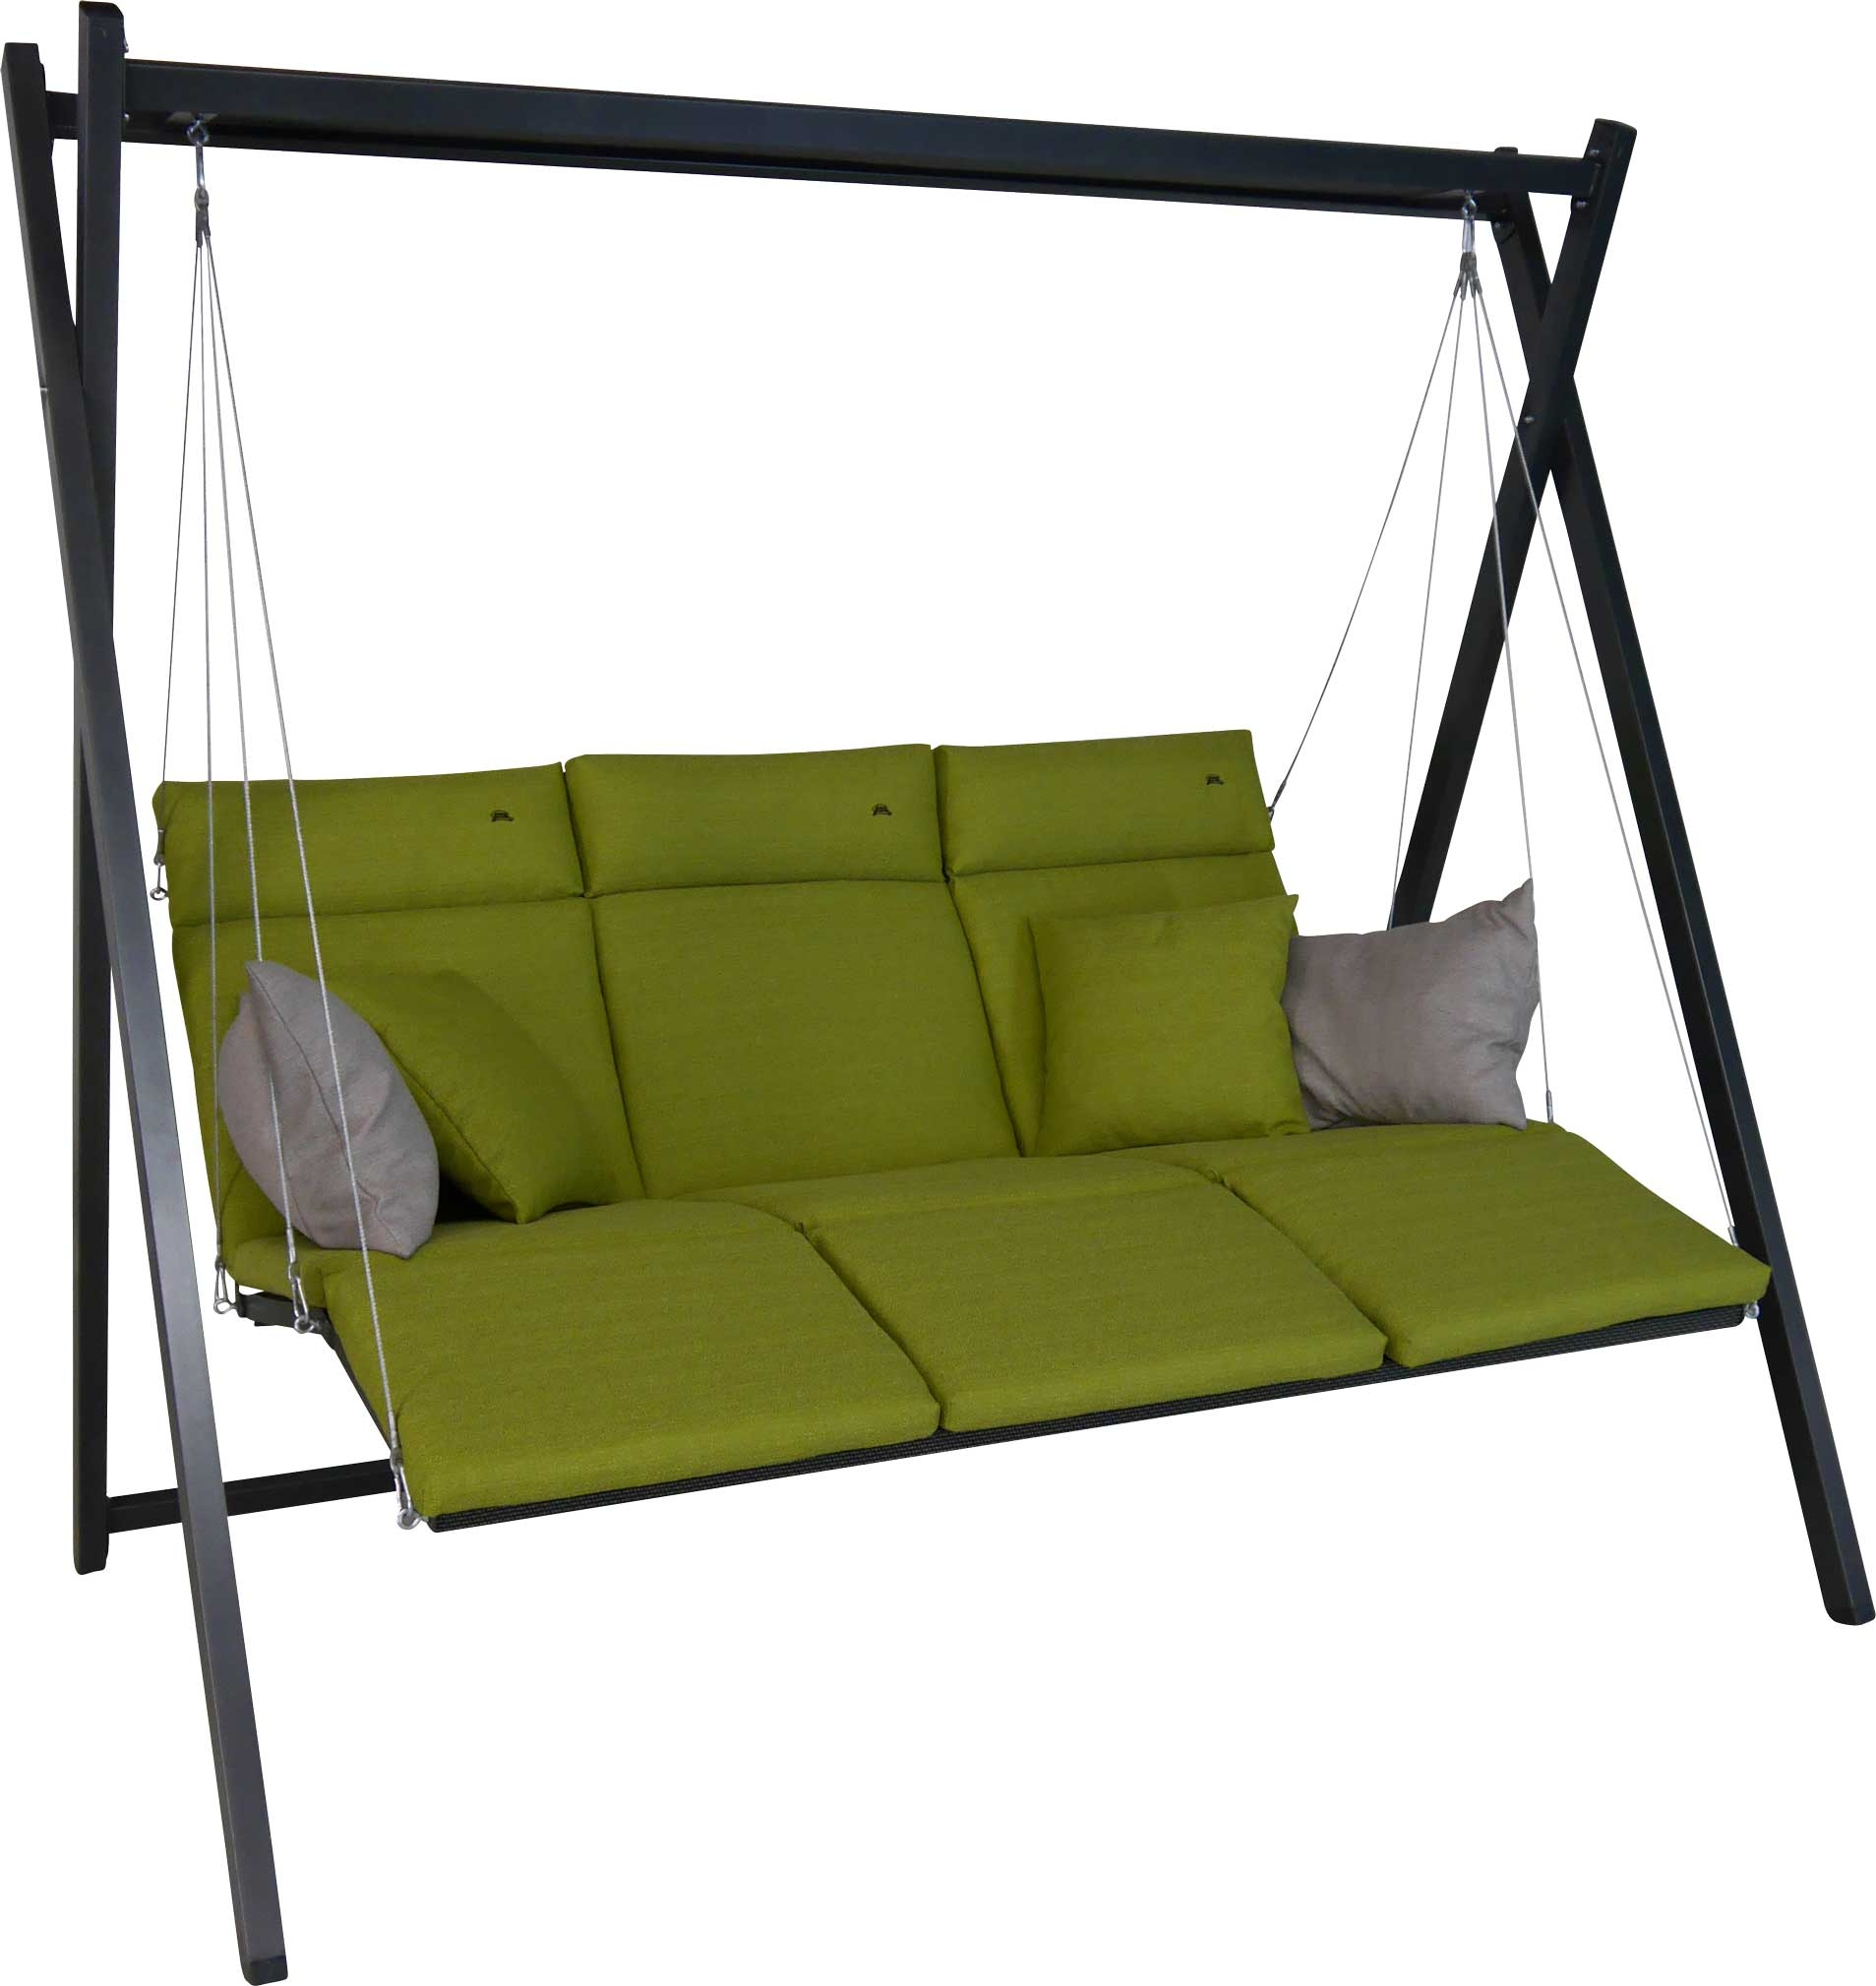 Angerer Hollywoodschaukel Relax Smart lime - 3-Sitzer